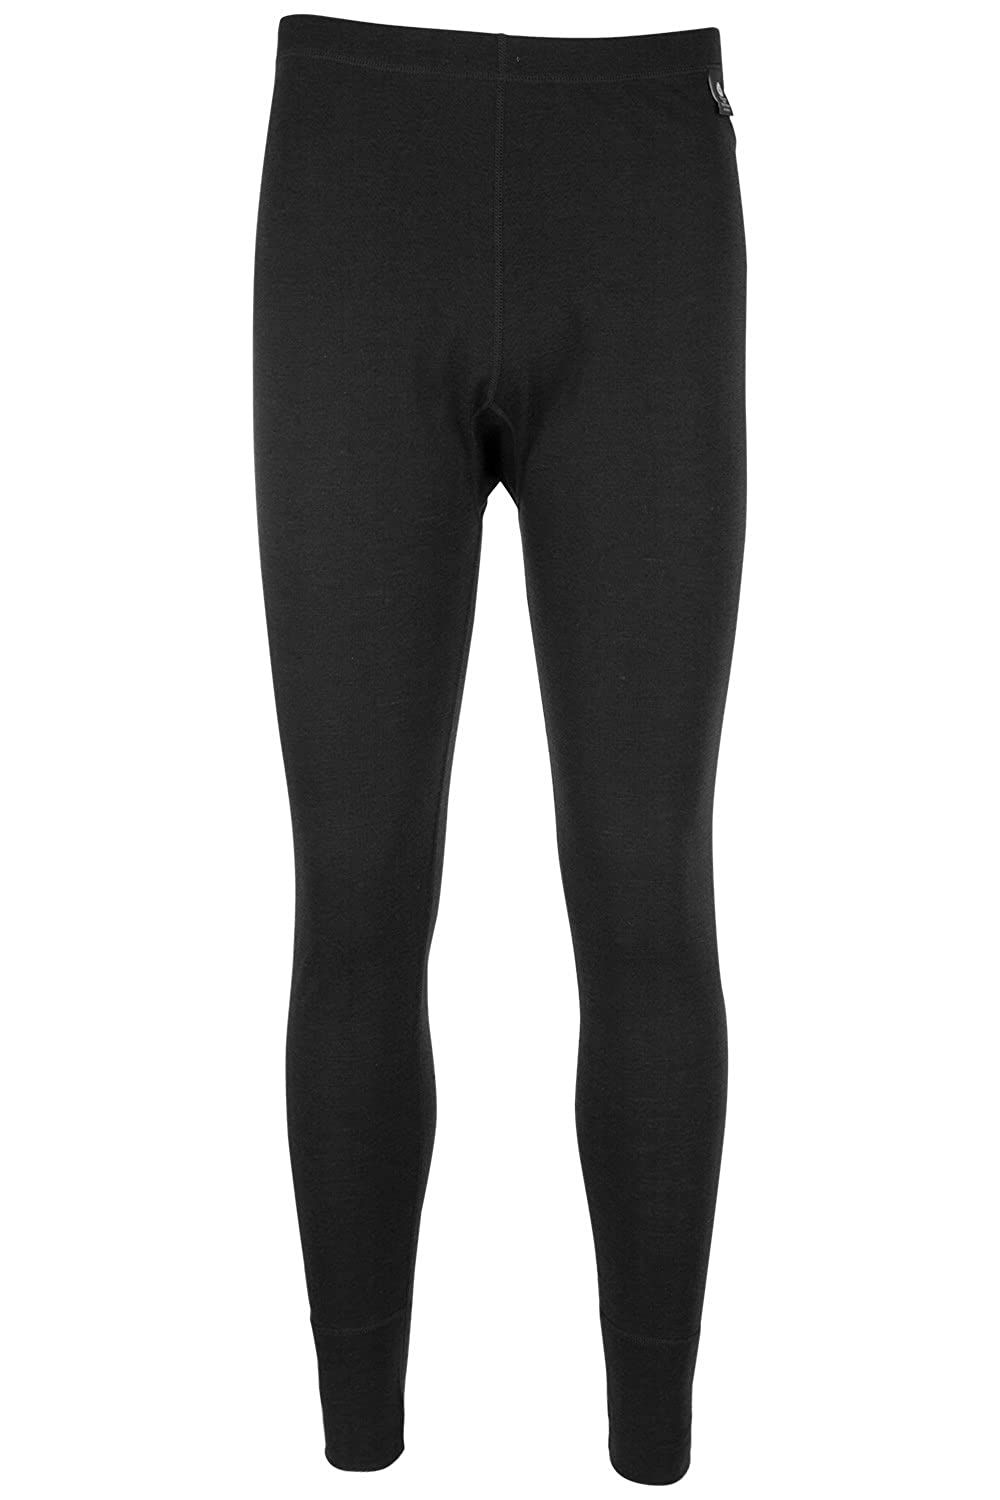 Mountain Warehouse Merino Männerhose Funktionsunterwäsche hermo Isoliert Base Layer Sport Outdoor Laufen Joggen